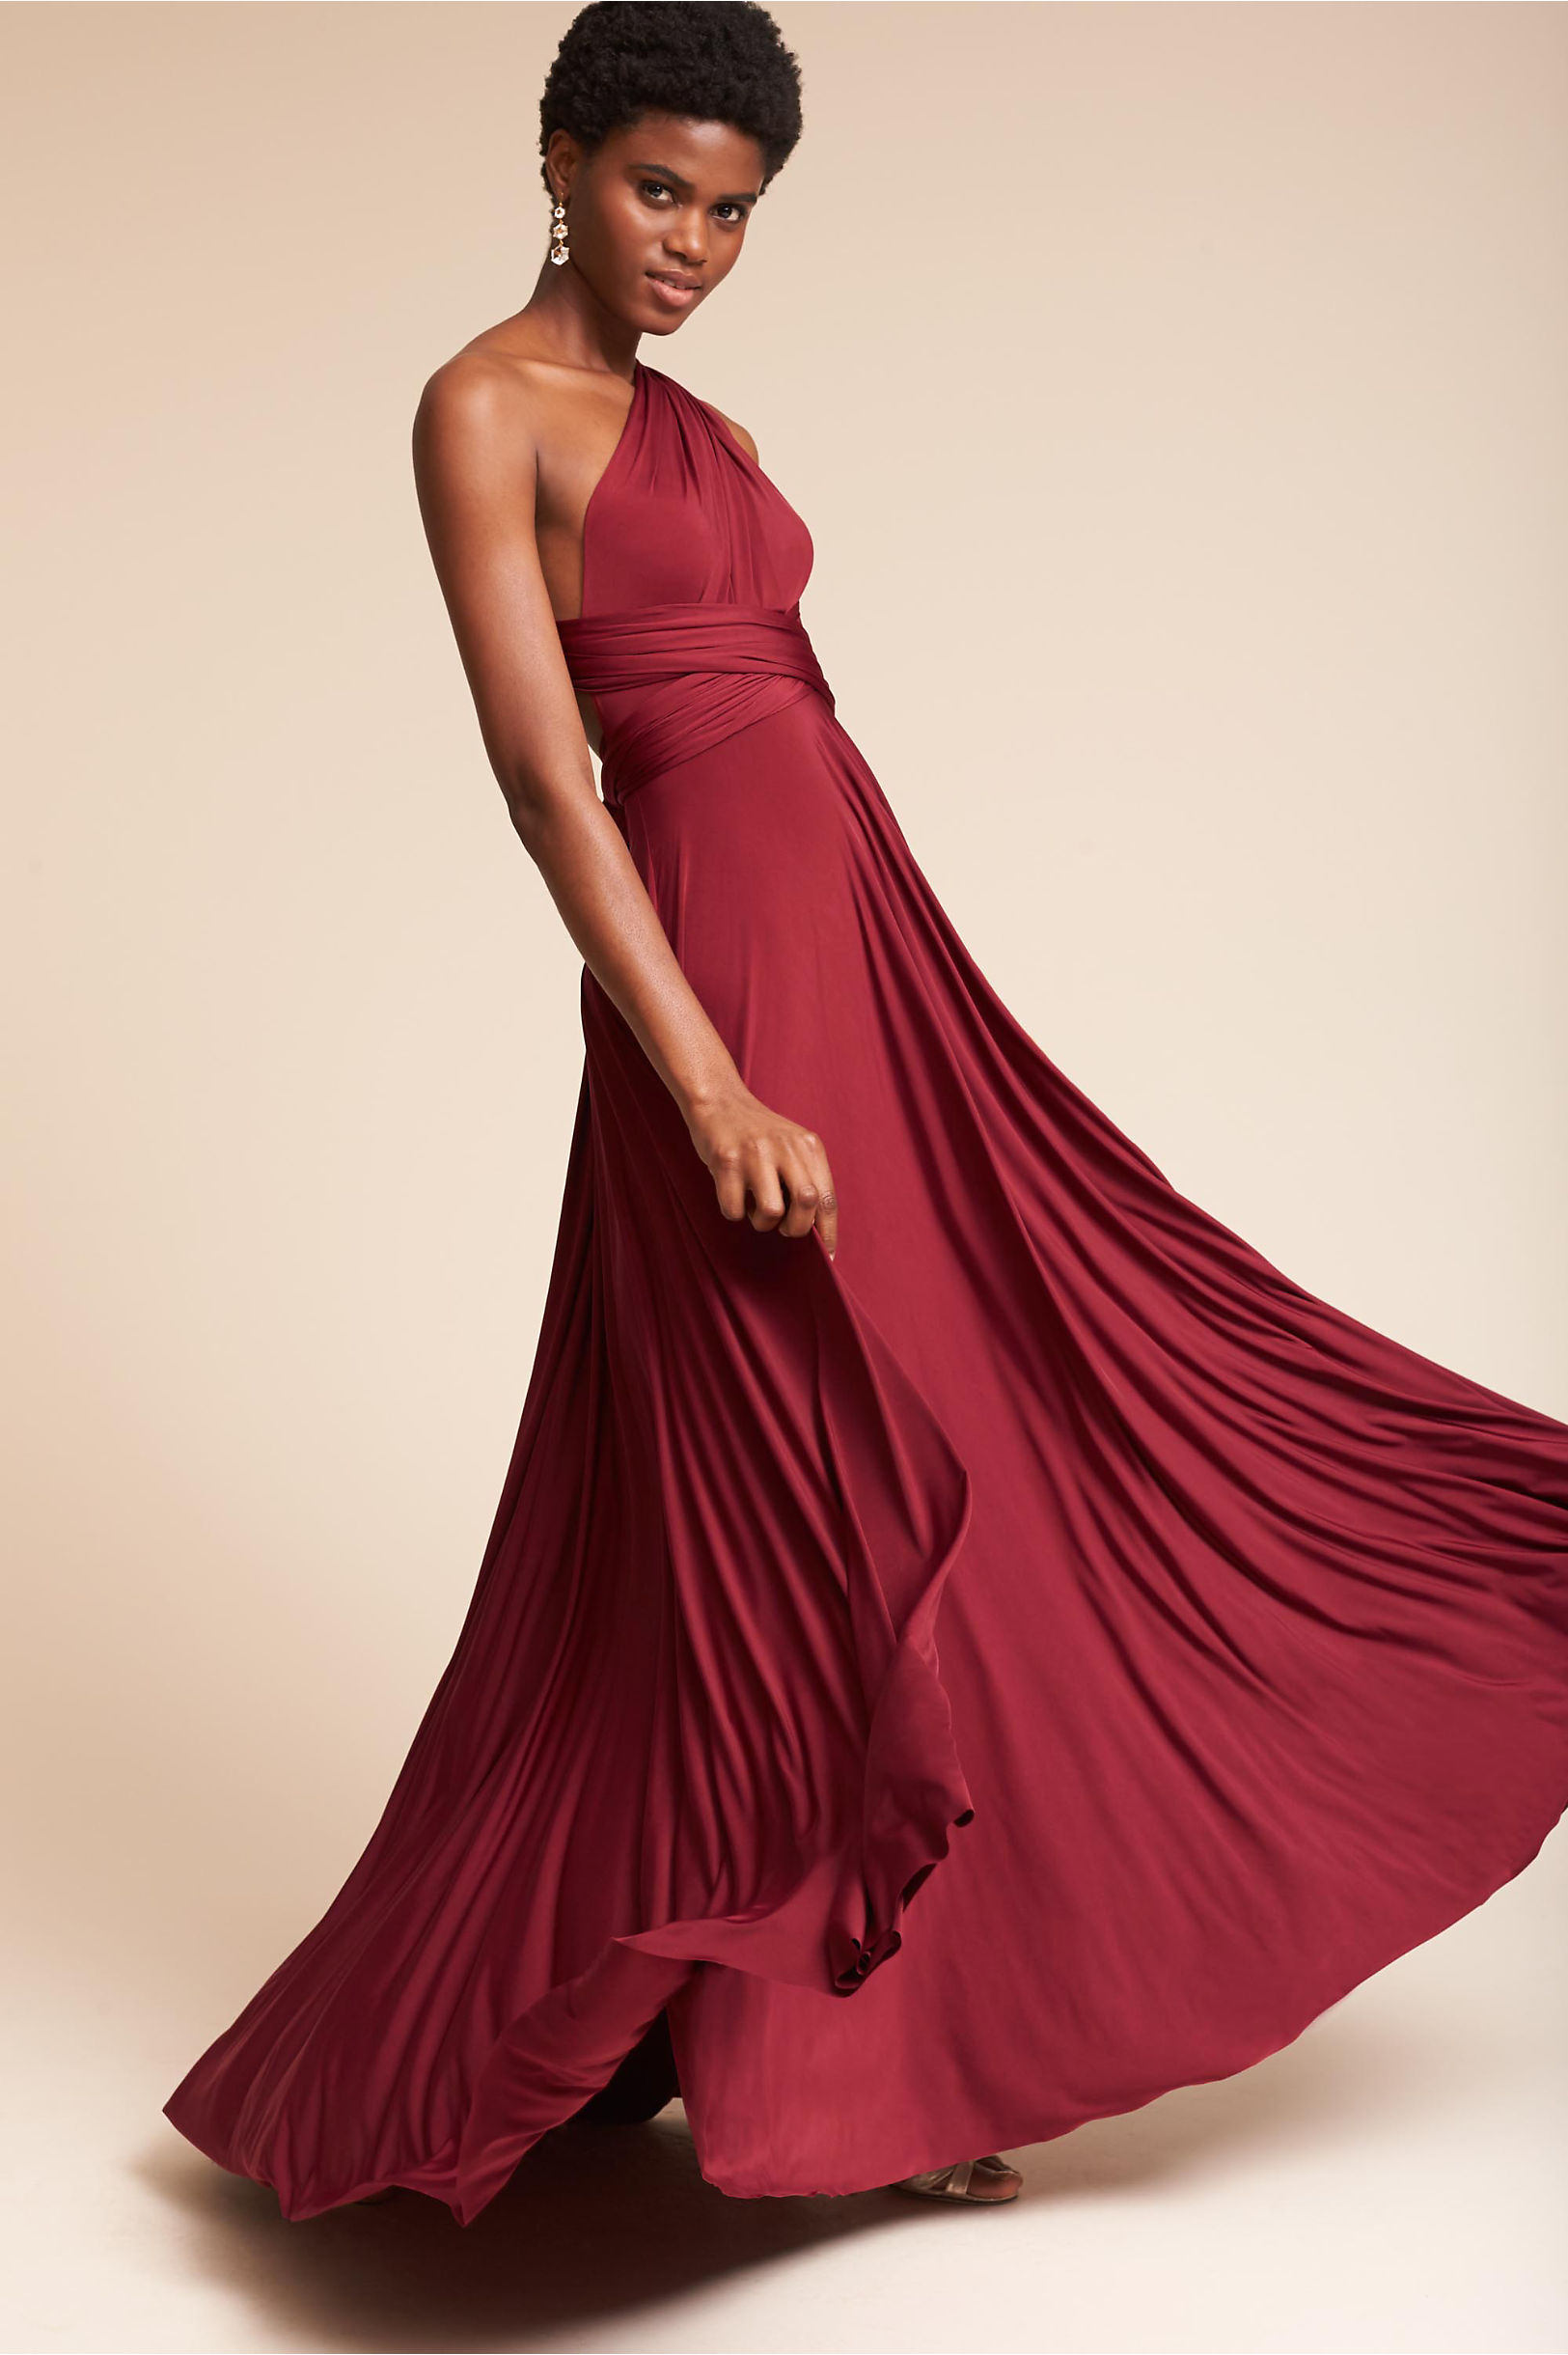 Ginger Convertible Maxi Dress in Burgundy by BHLDN